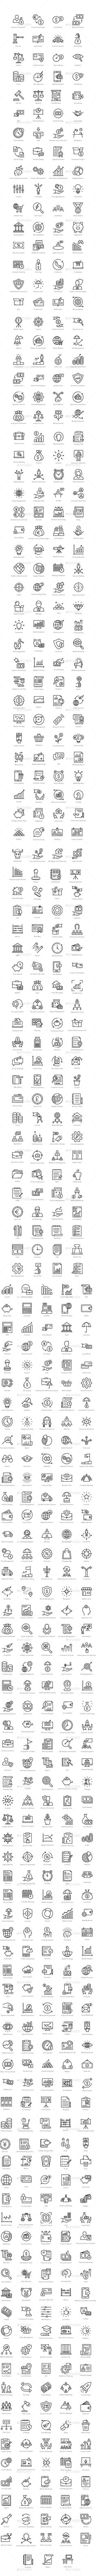 606 Finance Line Icons - Icons